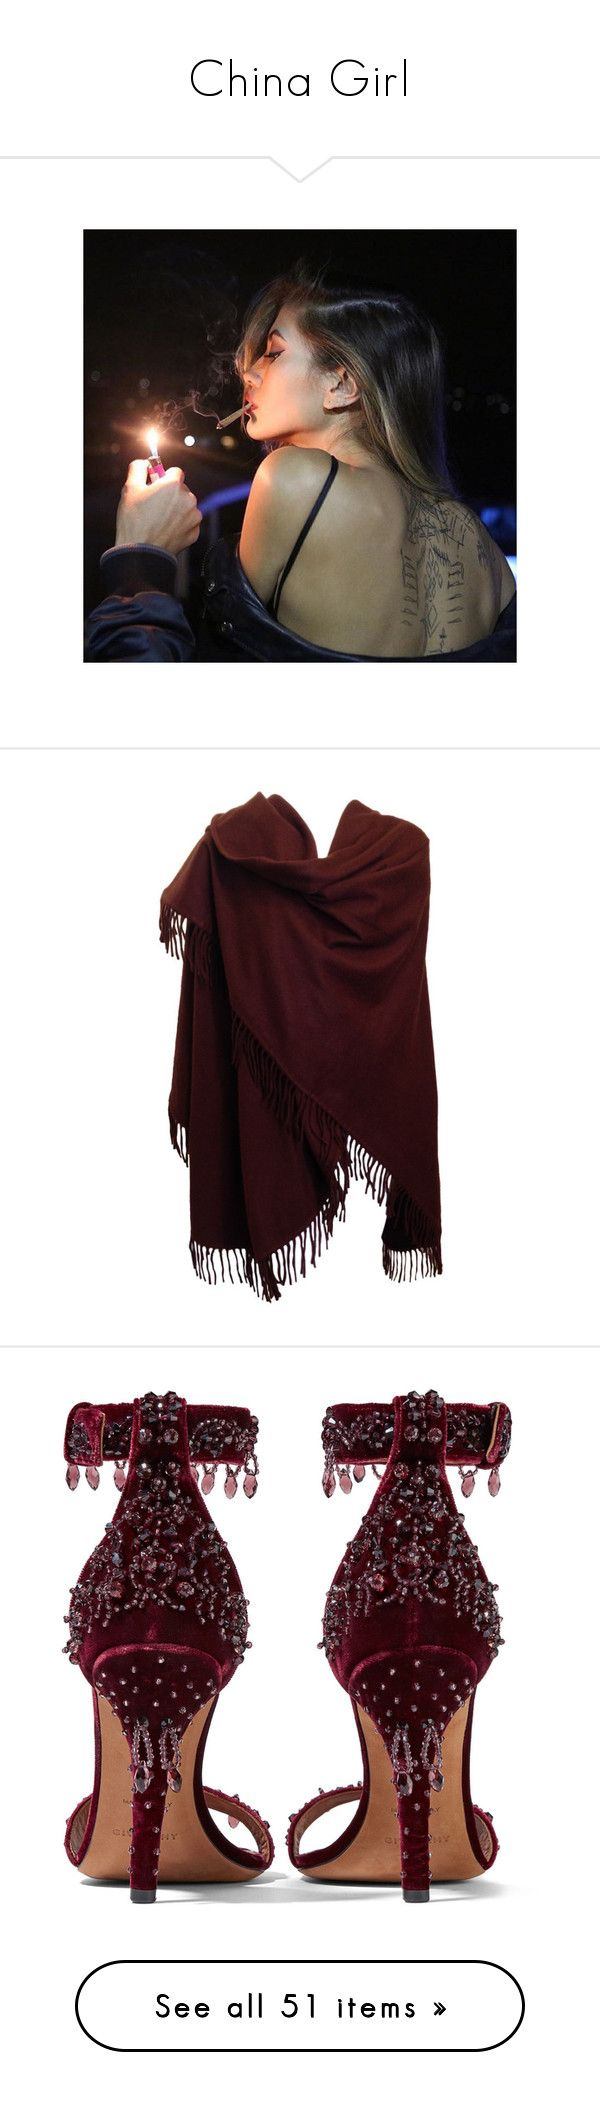 """China Girl"" by catty-girl ❤ liked on Polyvore featuring accessories, scarves, outerwear, jackets, cashmere scarves, cashmere shawl, shawl scarves, loro piana scarves, burgundy shawl and shoes"